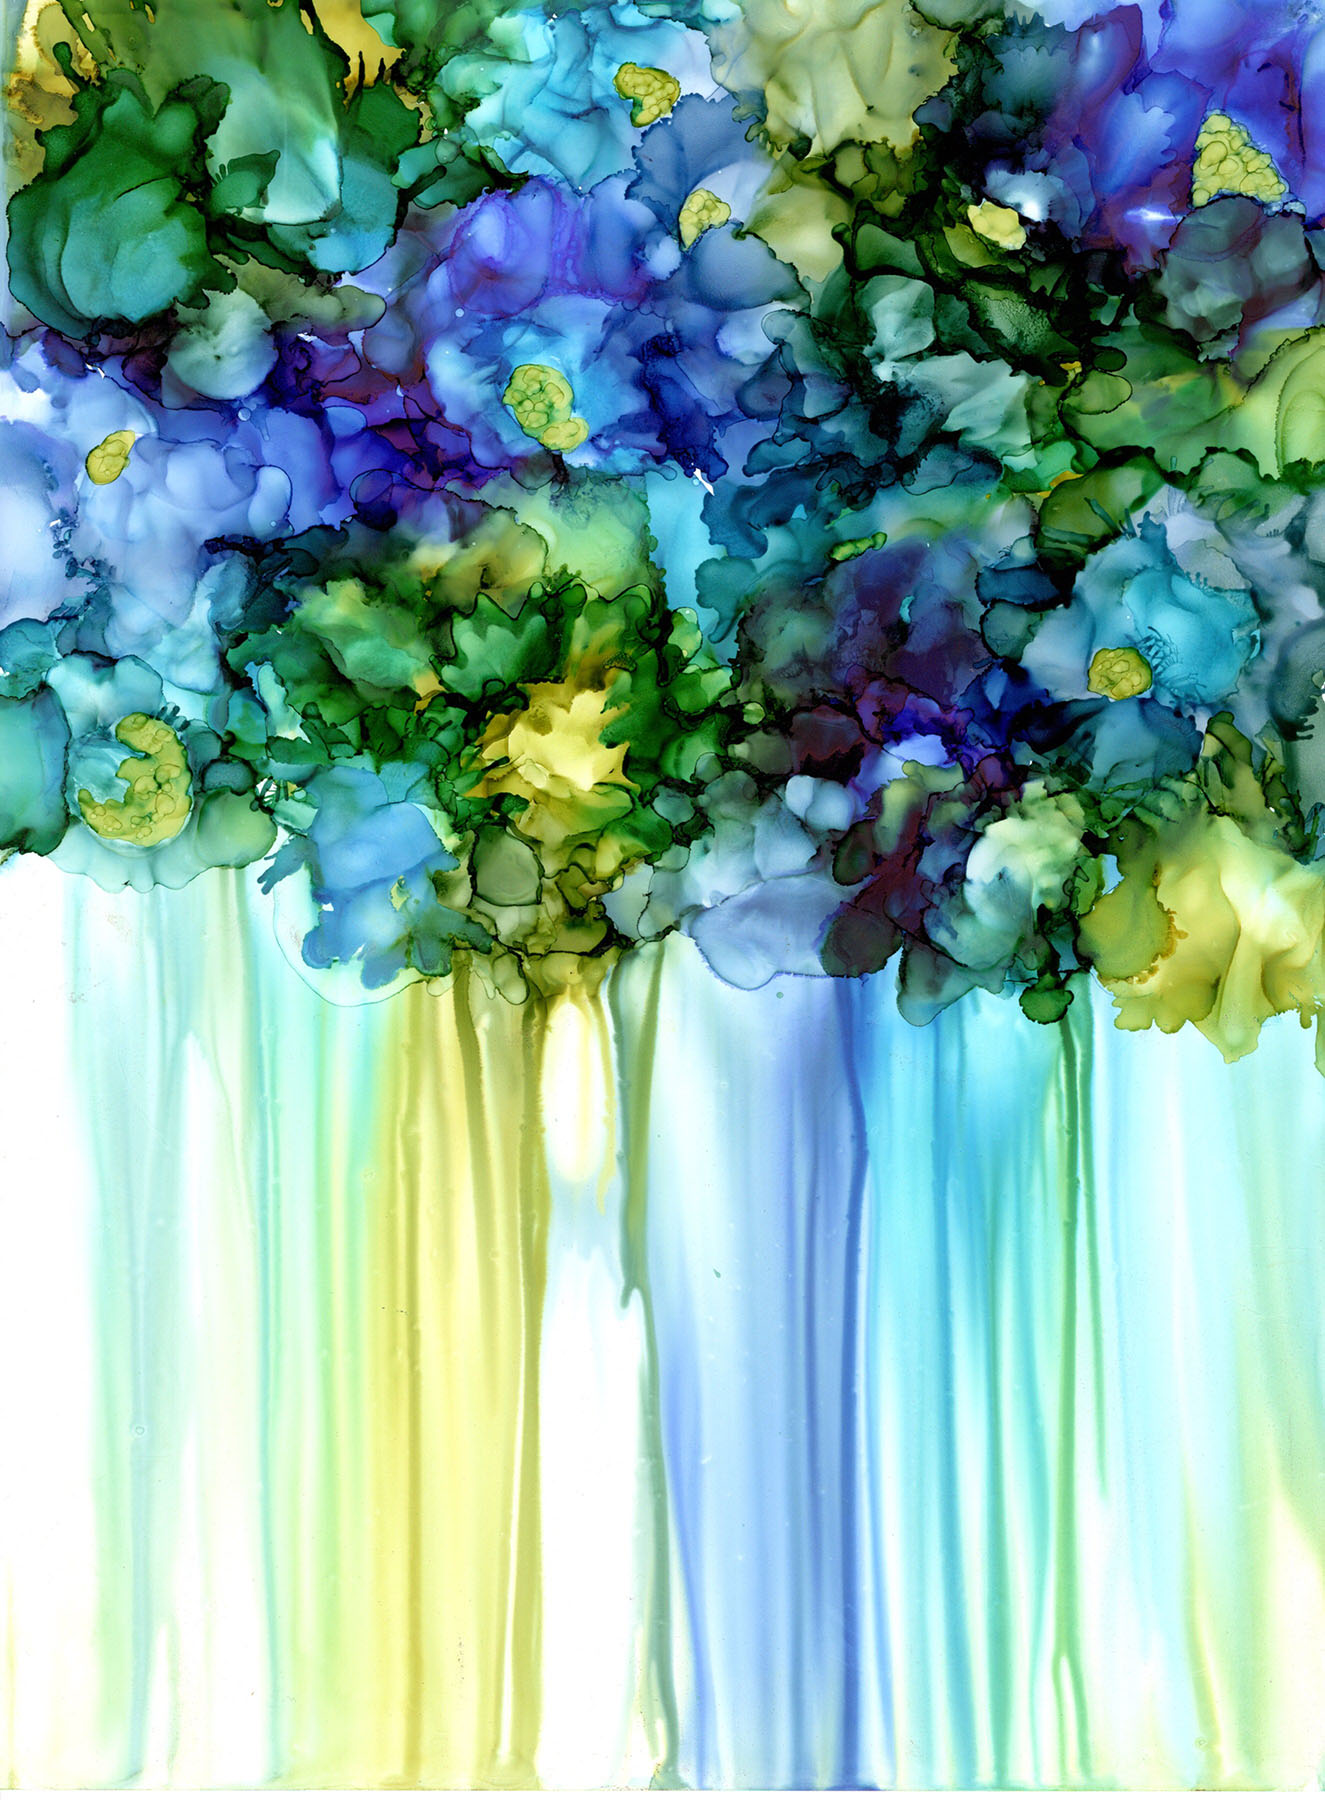 Alcohol Ink Contemporary Violets Painting by Korinne Carpino